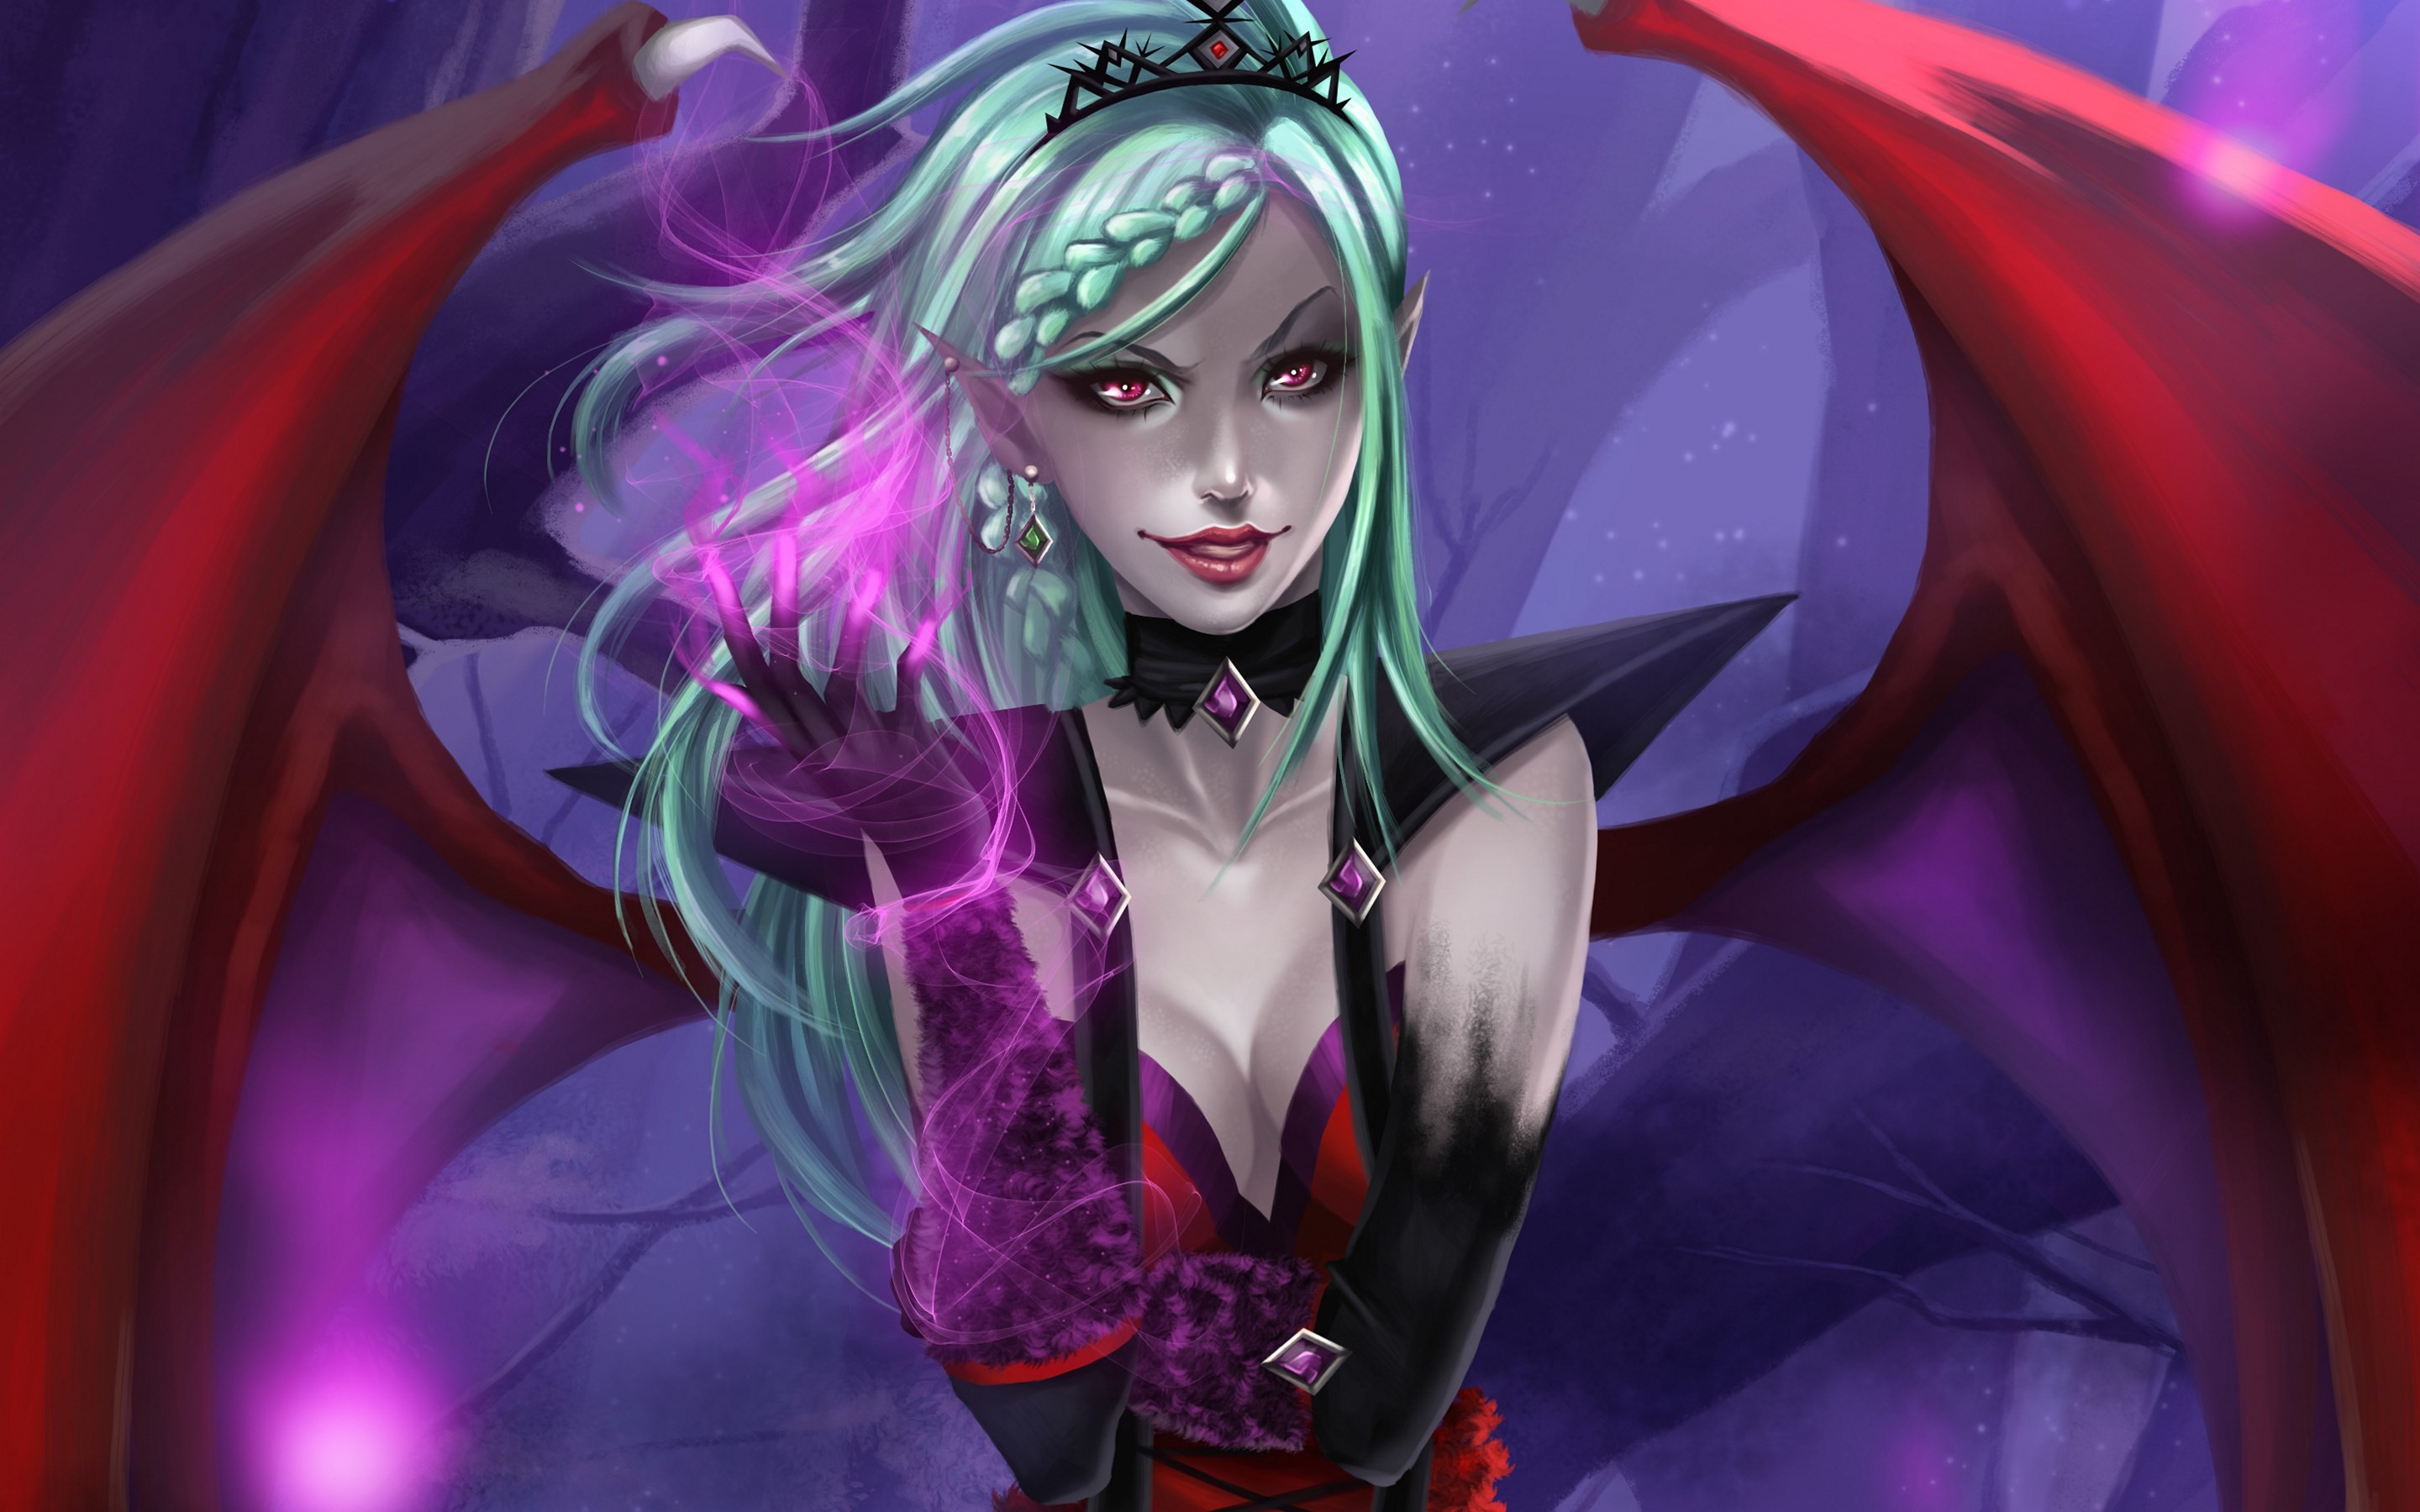 1629319, free wallpaper and screensavers for succubus